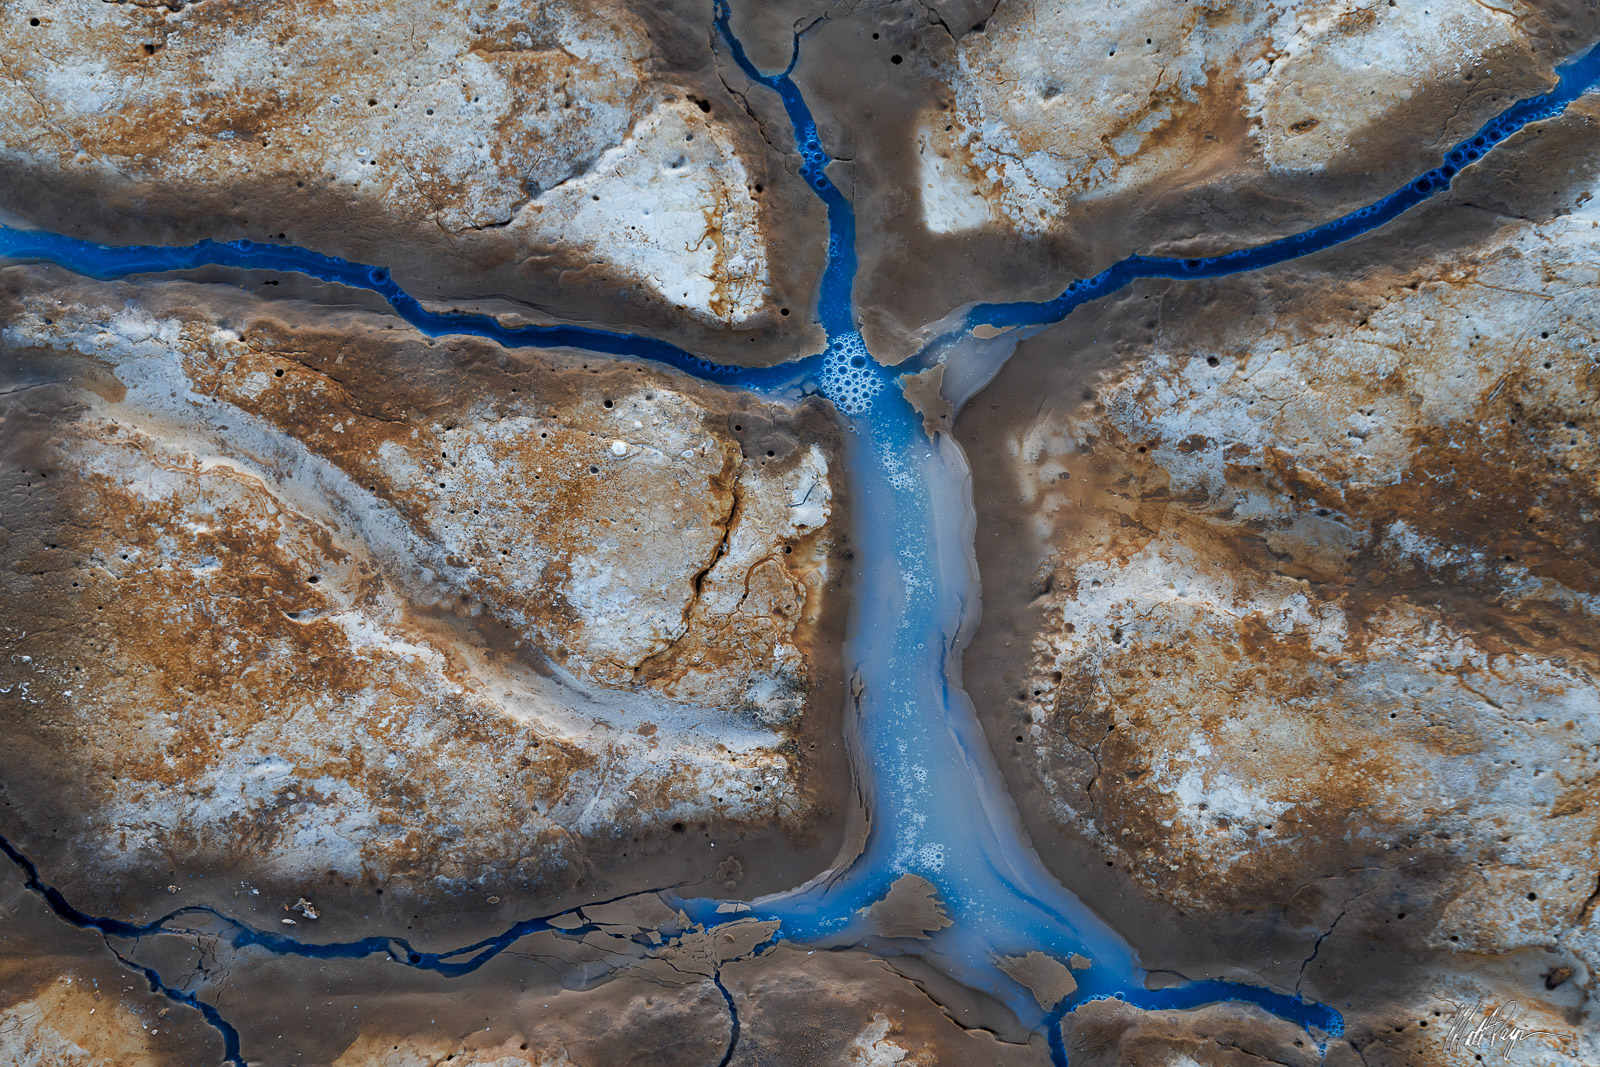 Water fills the tiles of mud on the desert floor and reflects the blue skies above, creating an effect that looks almost like...